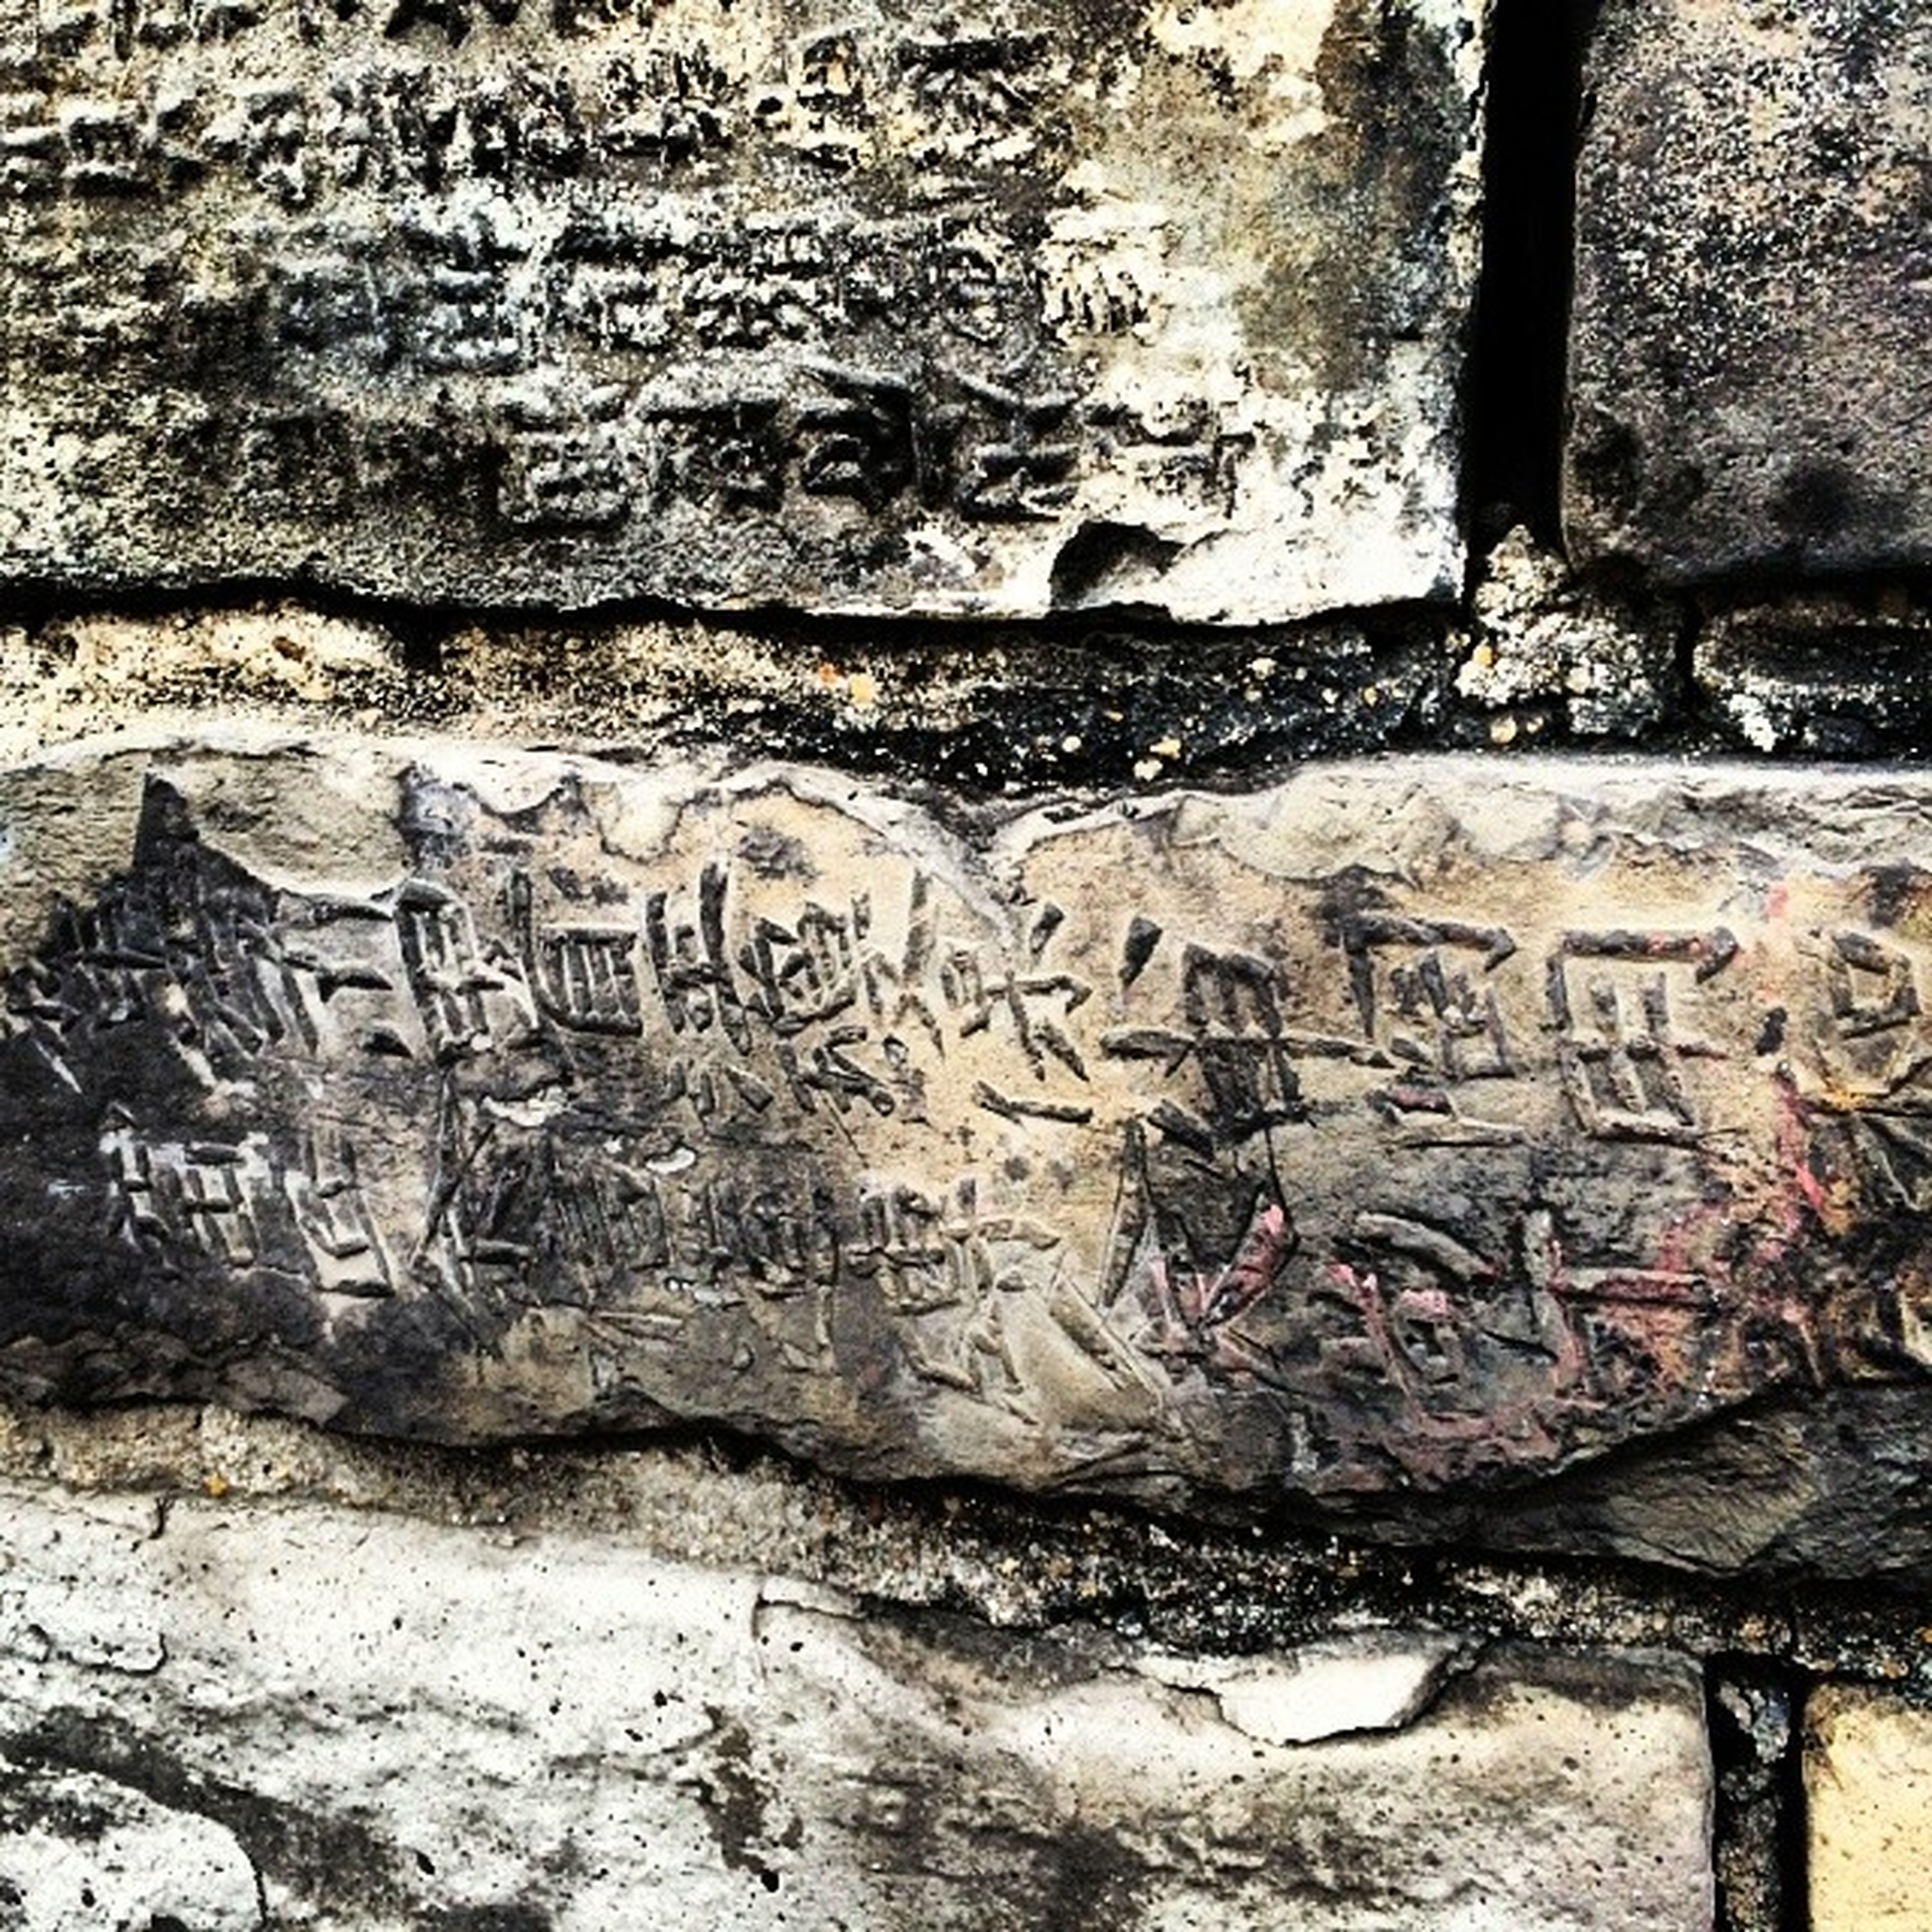 text, western script, art, communication, art and craft, creativity, graffiti, wall - building feature, human representation, built structure, architecture, non-western script, old, weathered, textured, wall, day, capital letter, carving - craft product